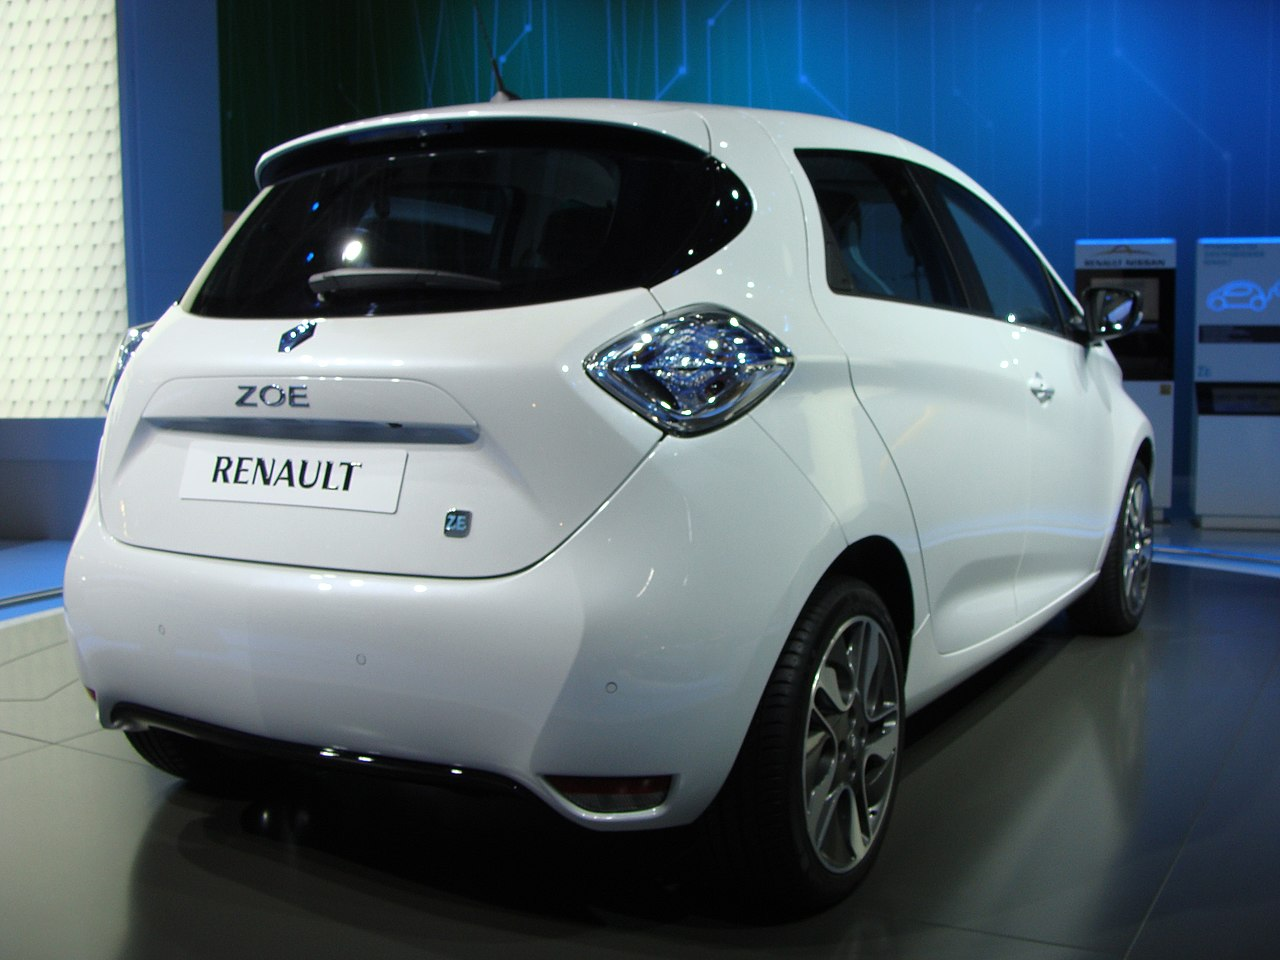 file renault zoe on mias 2012 rear view 2 jpg wikimedia commons. Black Bedroom Furniture Sets. Home Design Ideas